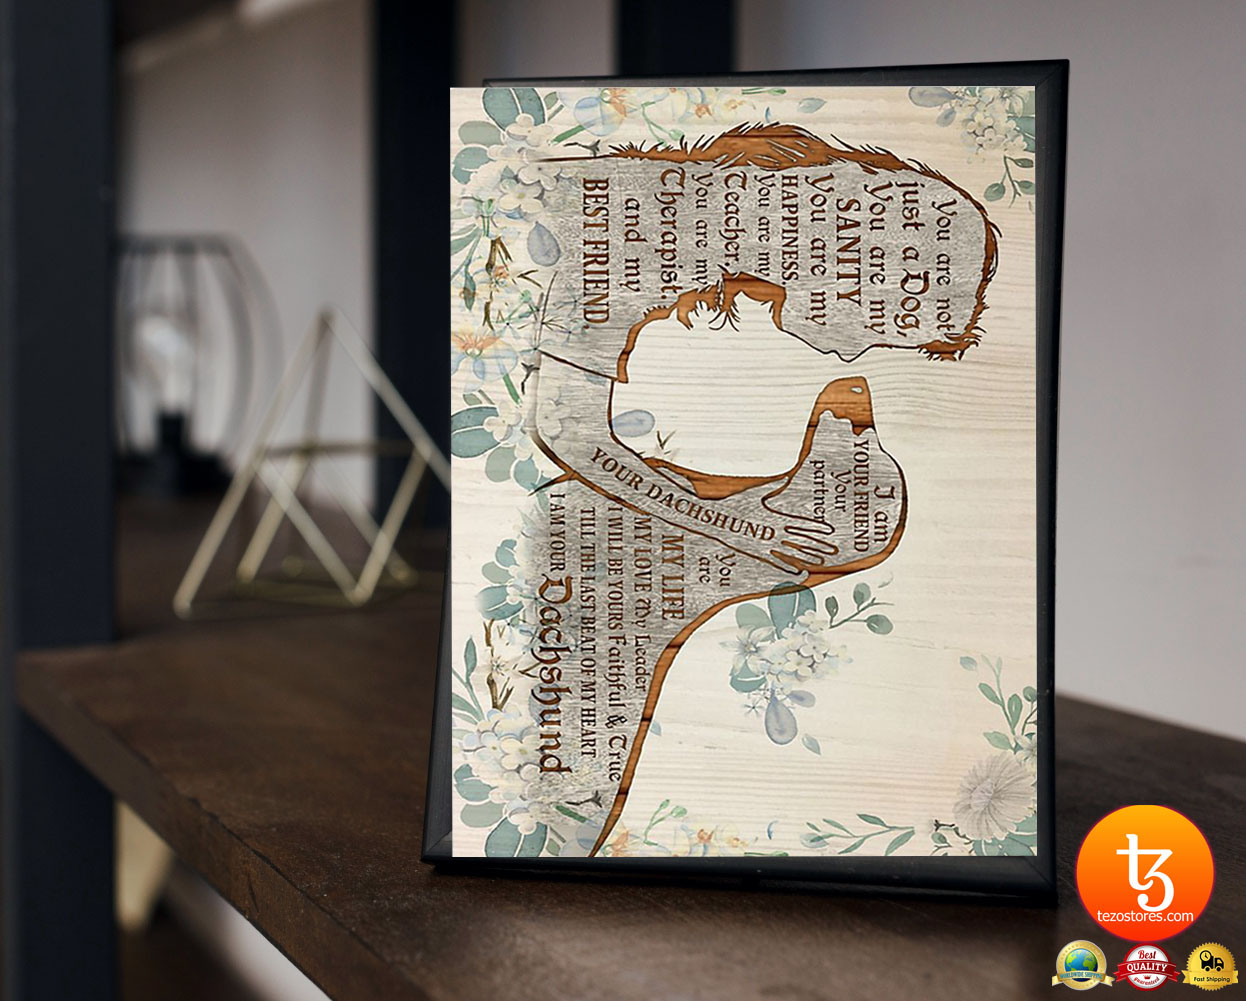 Dachshund I am your friend poster 19